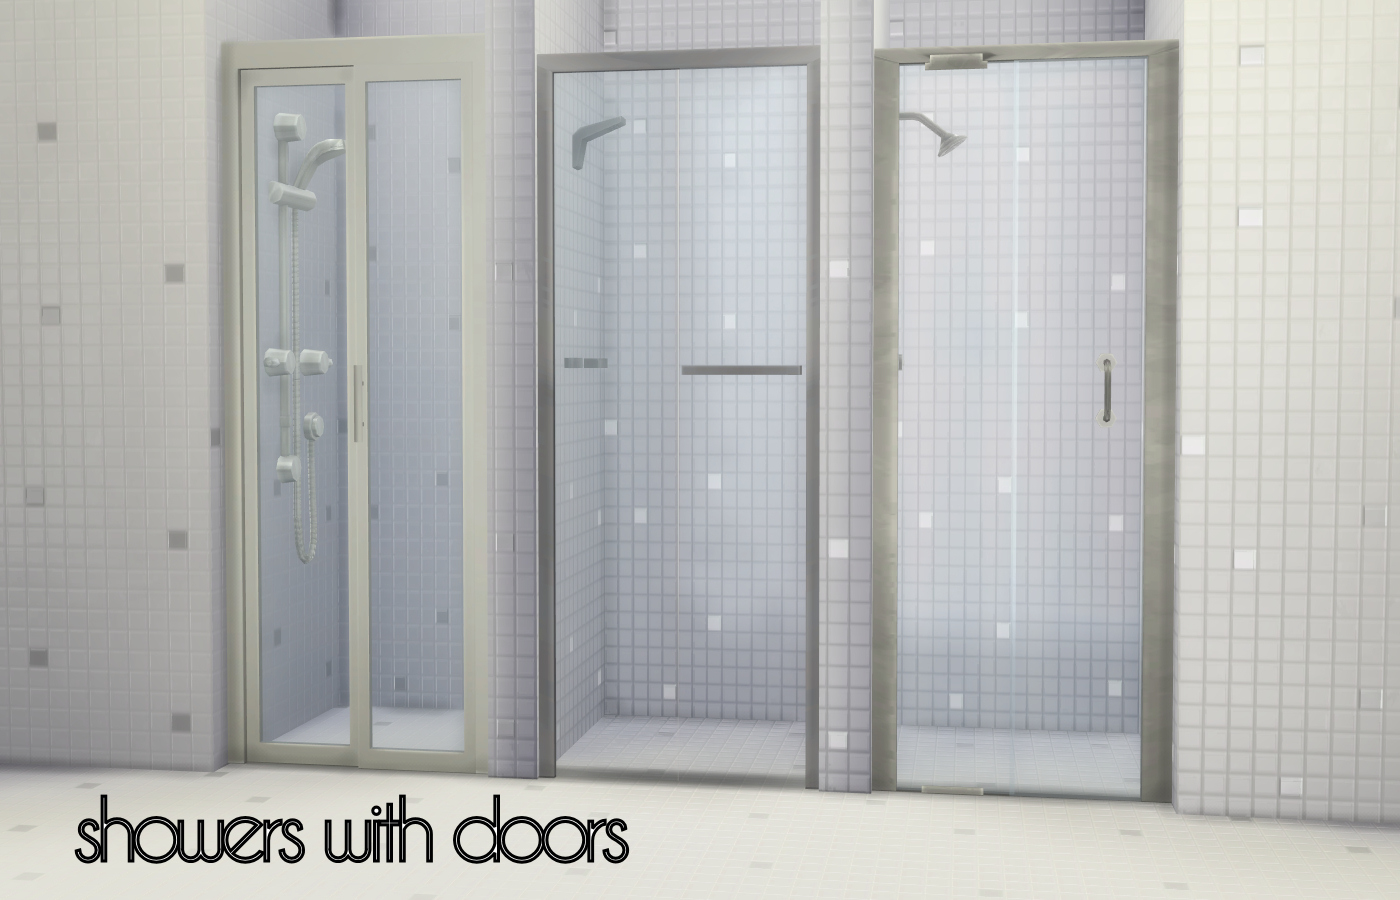 Mod The Sims - Build-a-Shower Kit